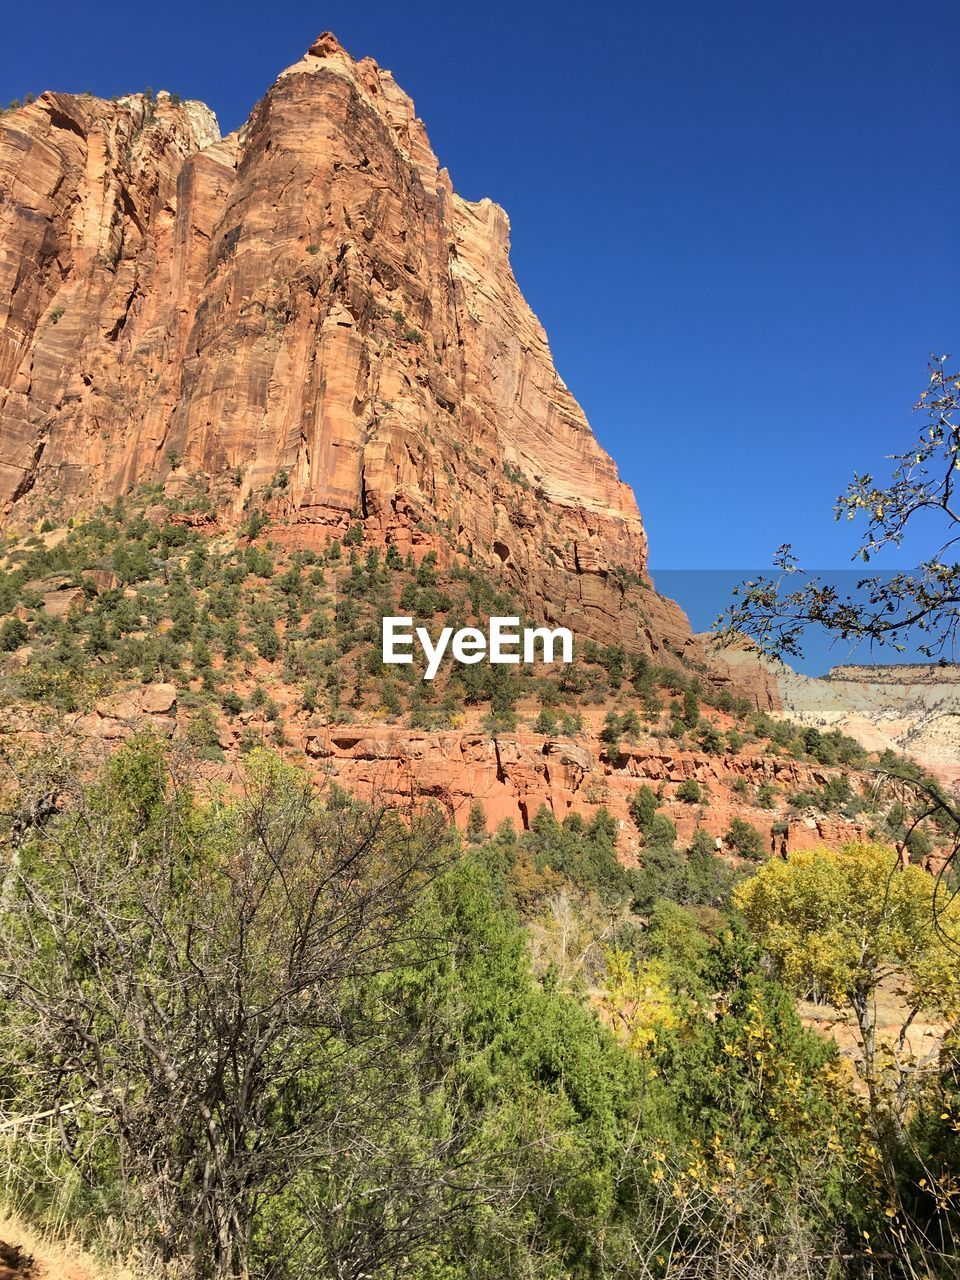 rock, rock formation, scenics - nature, rock - object, beauty in nature, environment, tranquil scene, non-urban scene, mountain, landscape, geology, sky, plant, physical geography, solid, tranquility, nature, no people, day, land, mountain range, climate, formation, arid climate, eroded, semi-arid